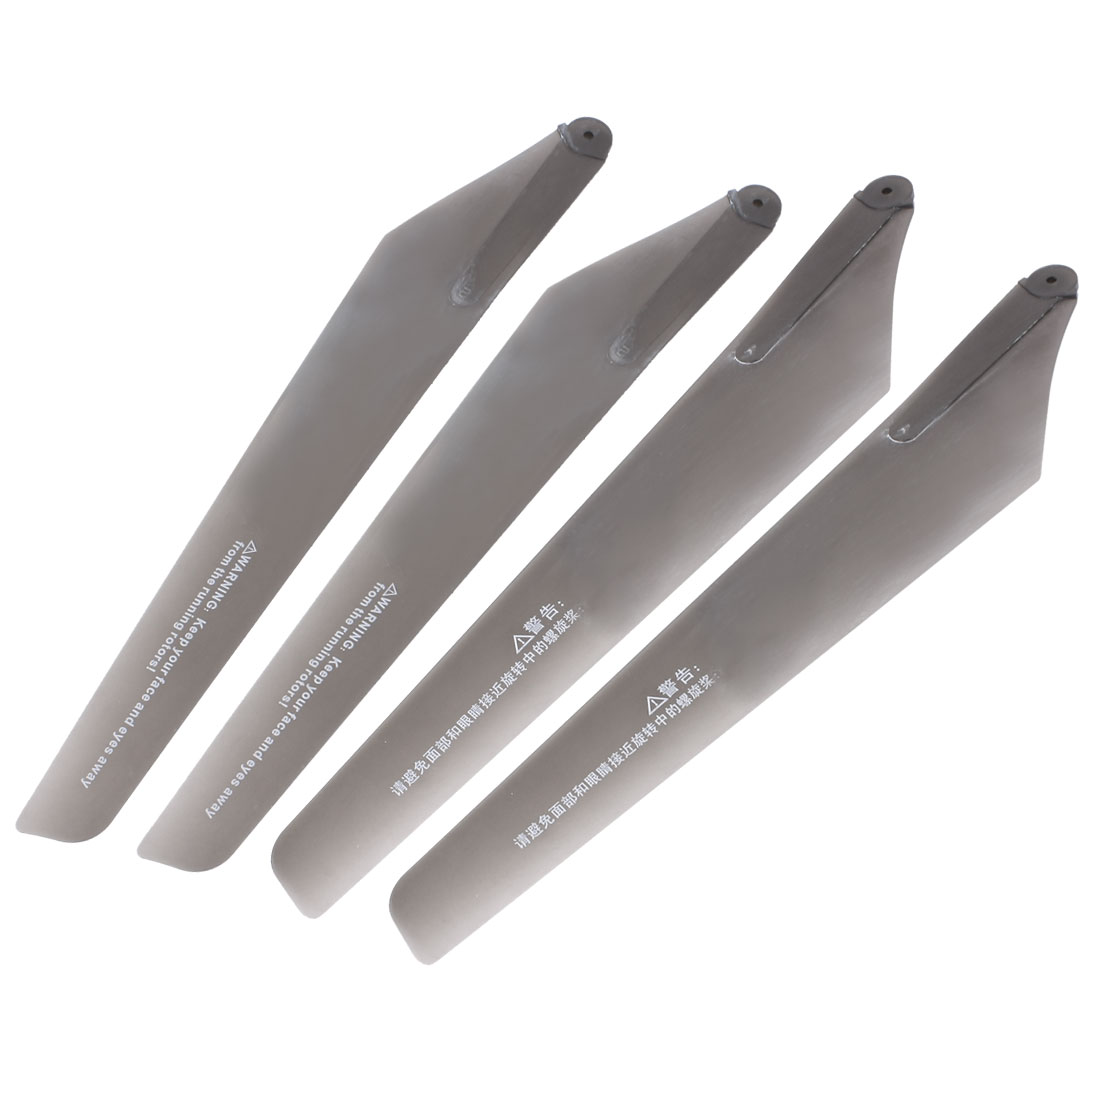 4 Pcs Gray Plastic Folding Propeller Vanes for 6023 RC Aircraft Plane Helicopter